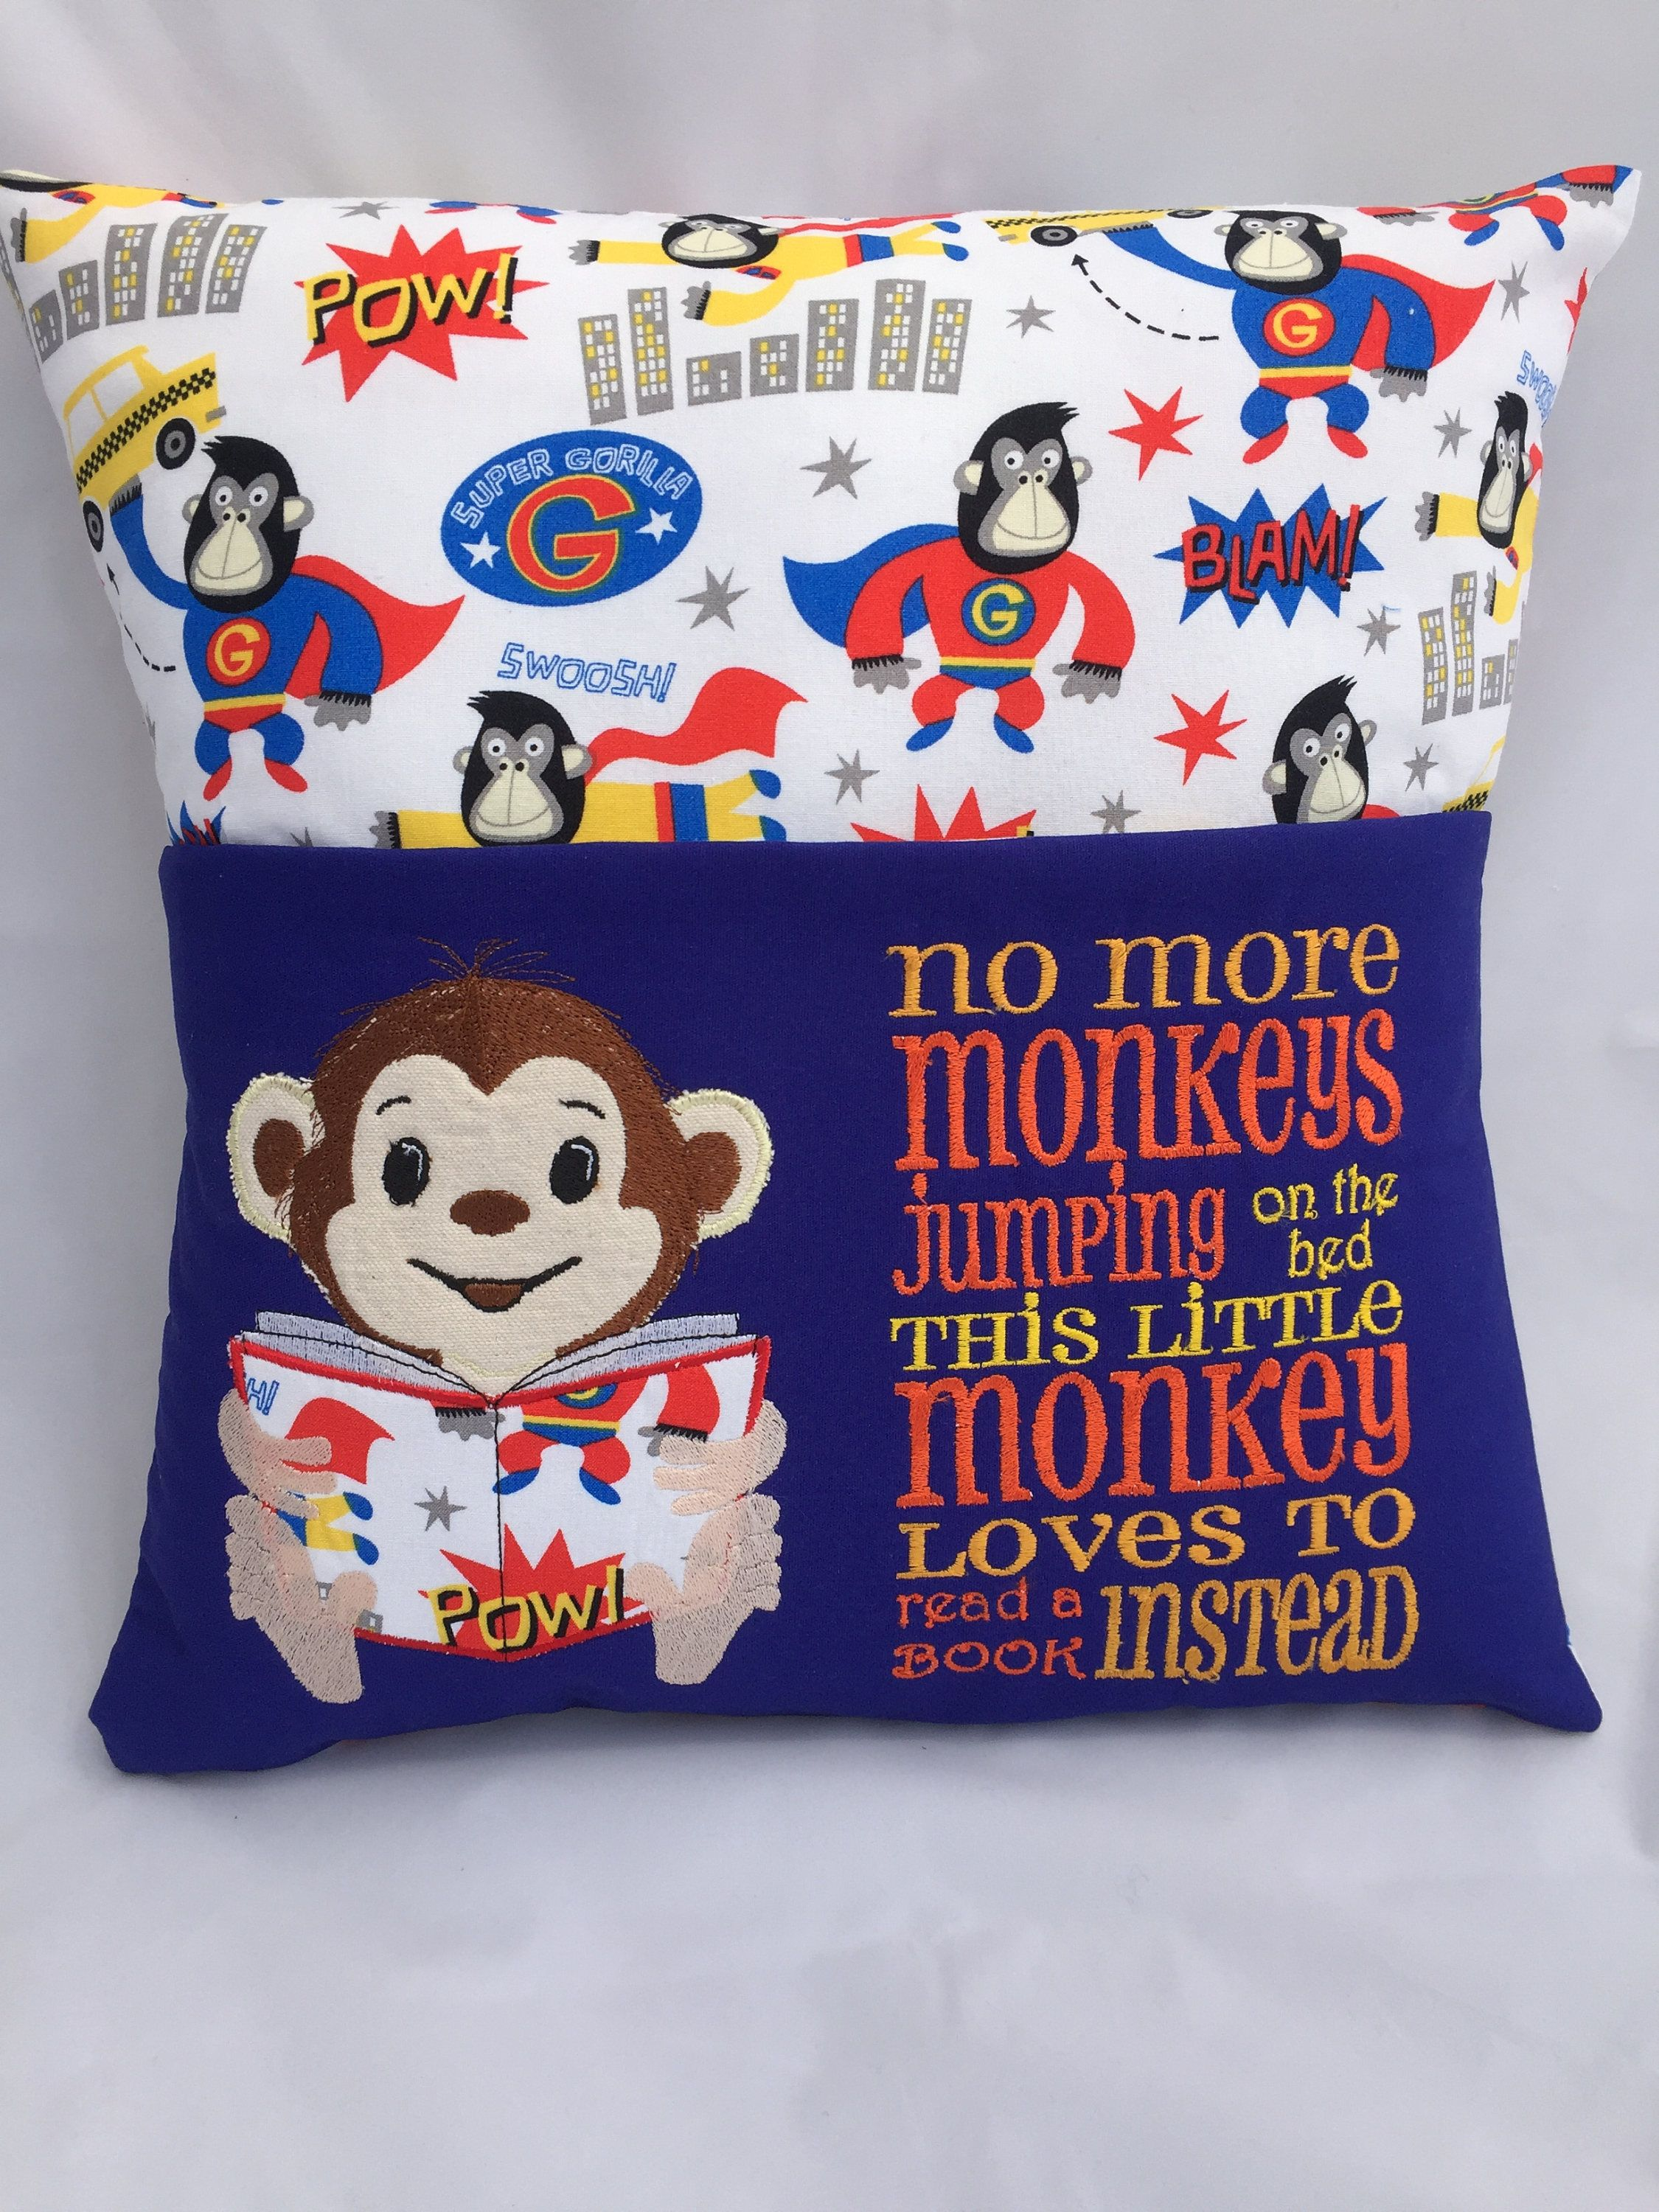 Pillow, Reading pillow, Book pocket, Childs reading pocket ...